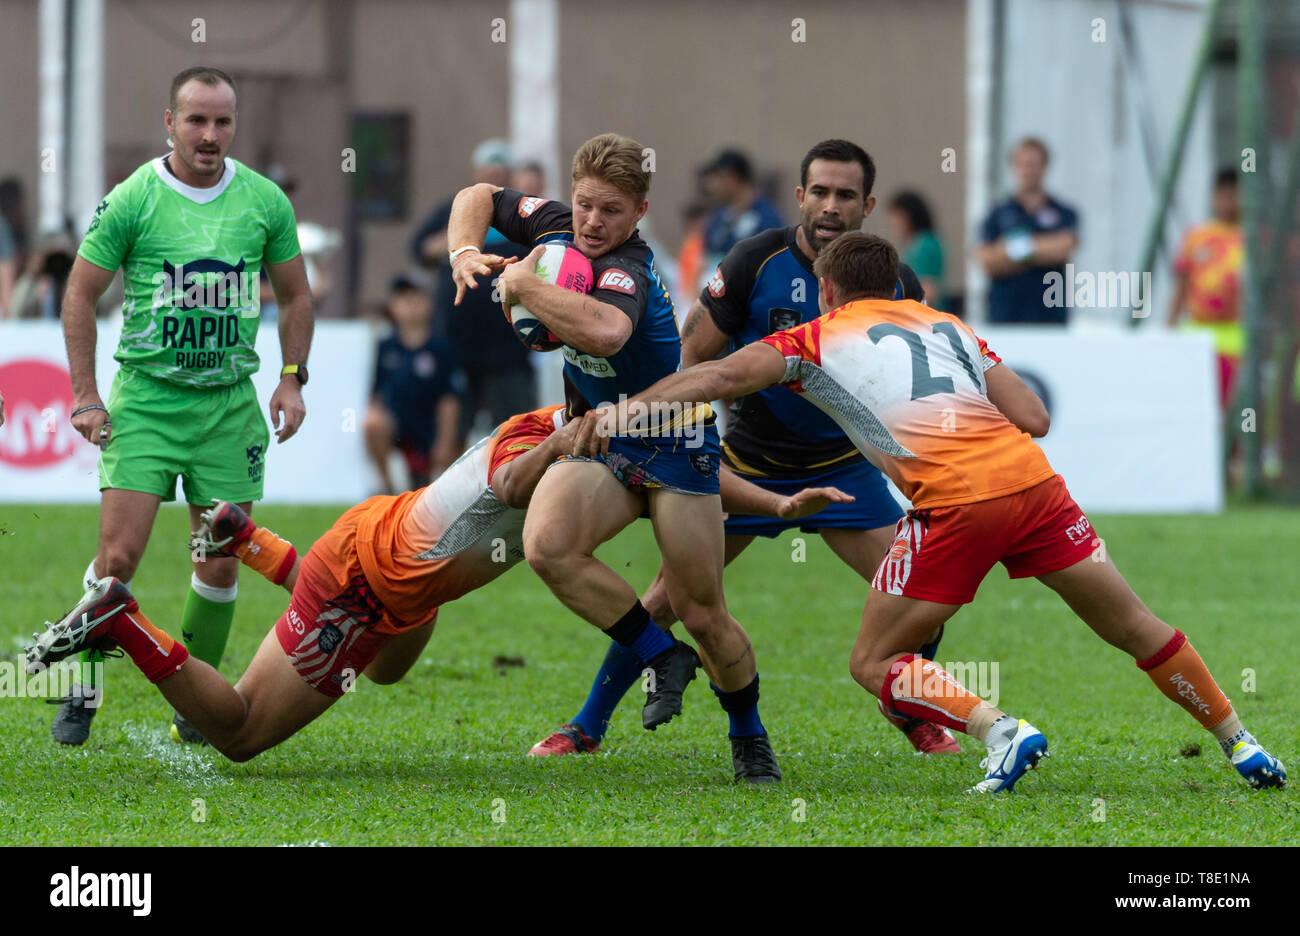 Hong Kong, China. 12th May, 2019. Western Force's Angus TAYLOR is tackled.Western Force vs South China Tigers Global Rapid Rugby. The Western Force make their inaugural appearance in Hong Kong facing off against the FWD South China Tigers in the finale of the Global Rapid Rugby Asian Showcase Series Credit: Jayne Russell/ZUMA Wire/Alamy Live News Stock Photo